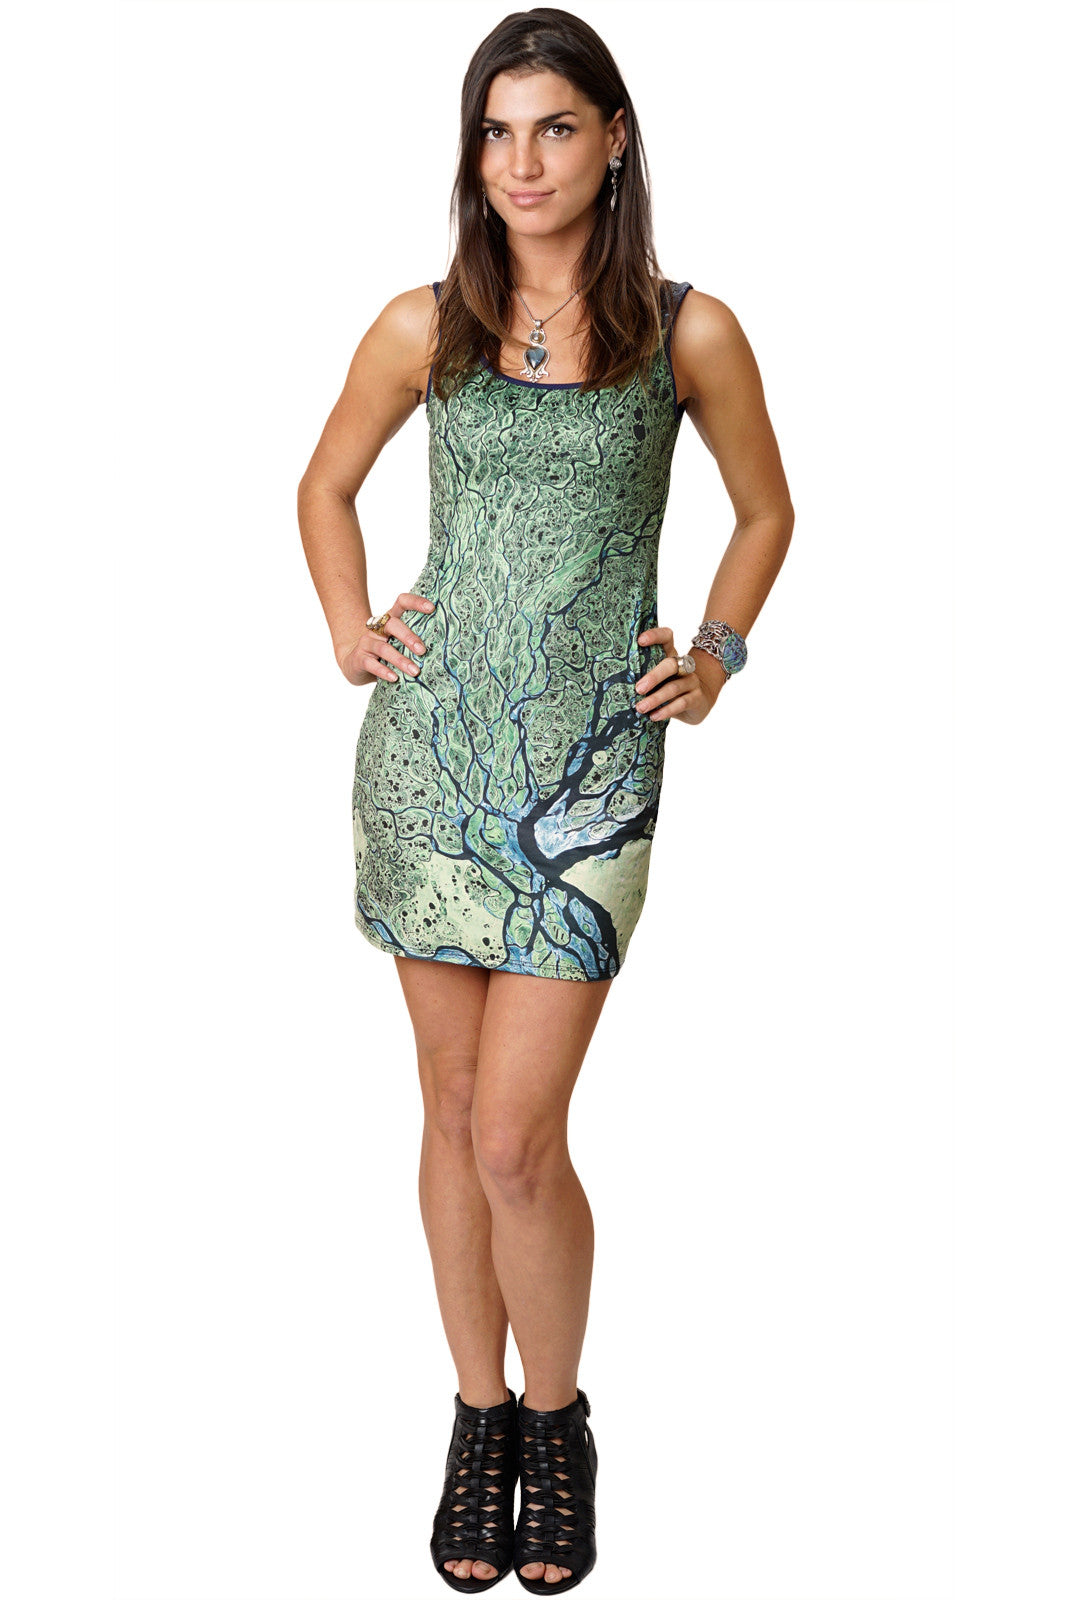 InVisions Clothing-Cocktail Dress-Nature Lover Dress-Lena Delta